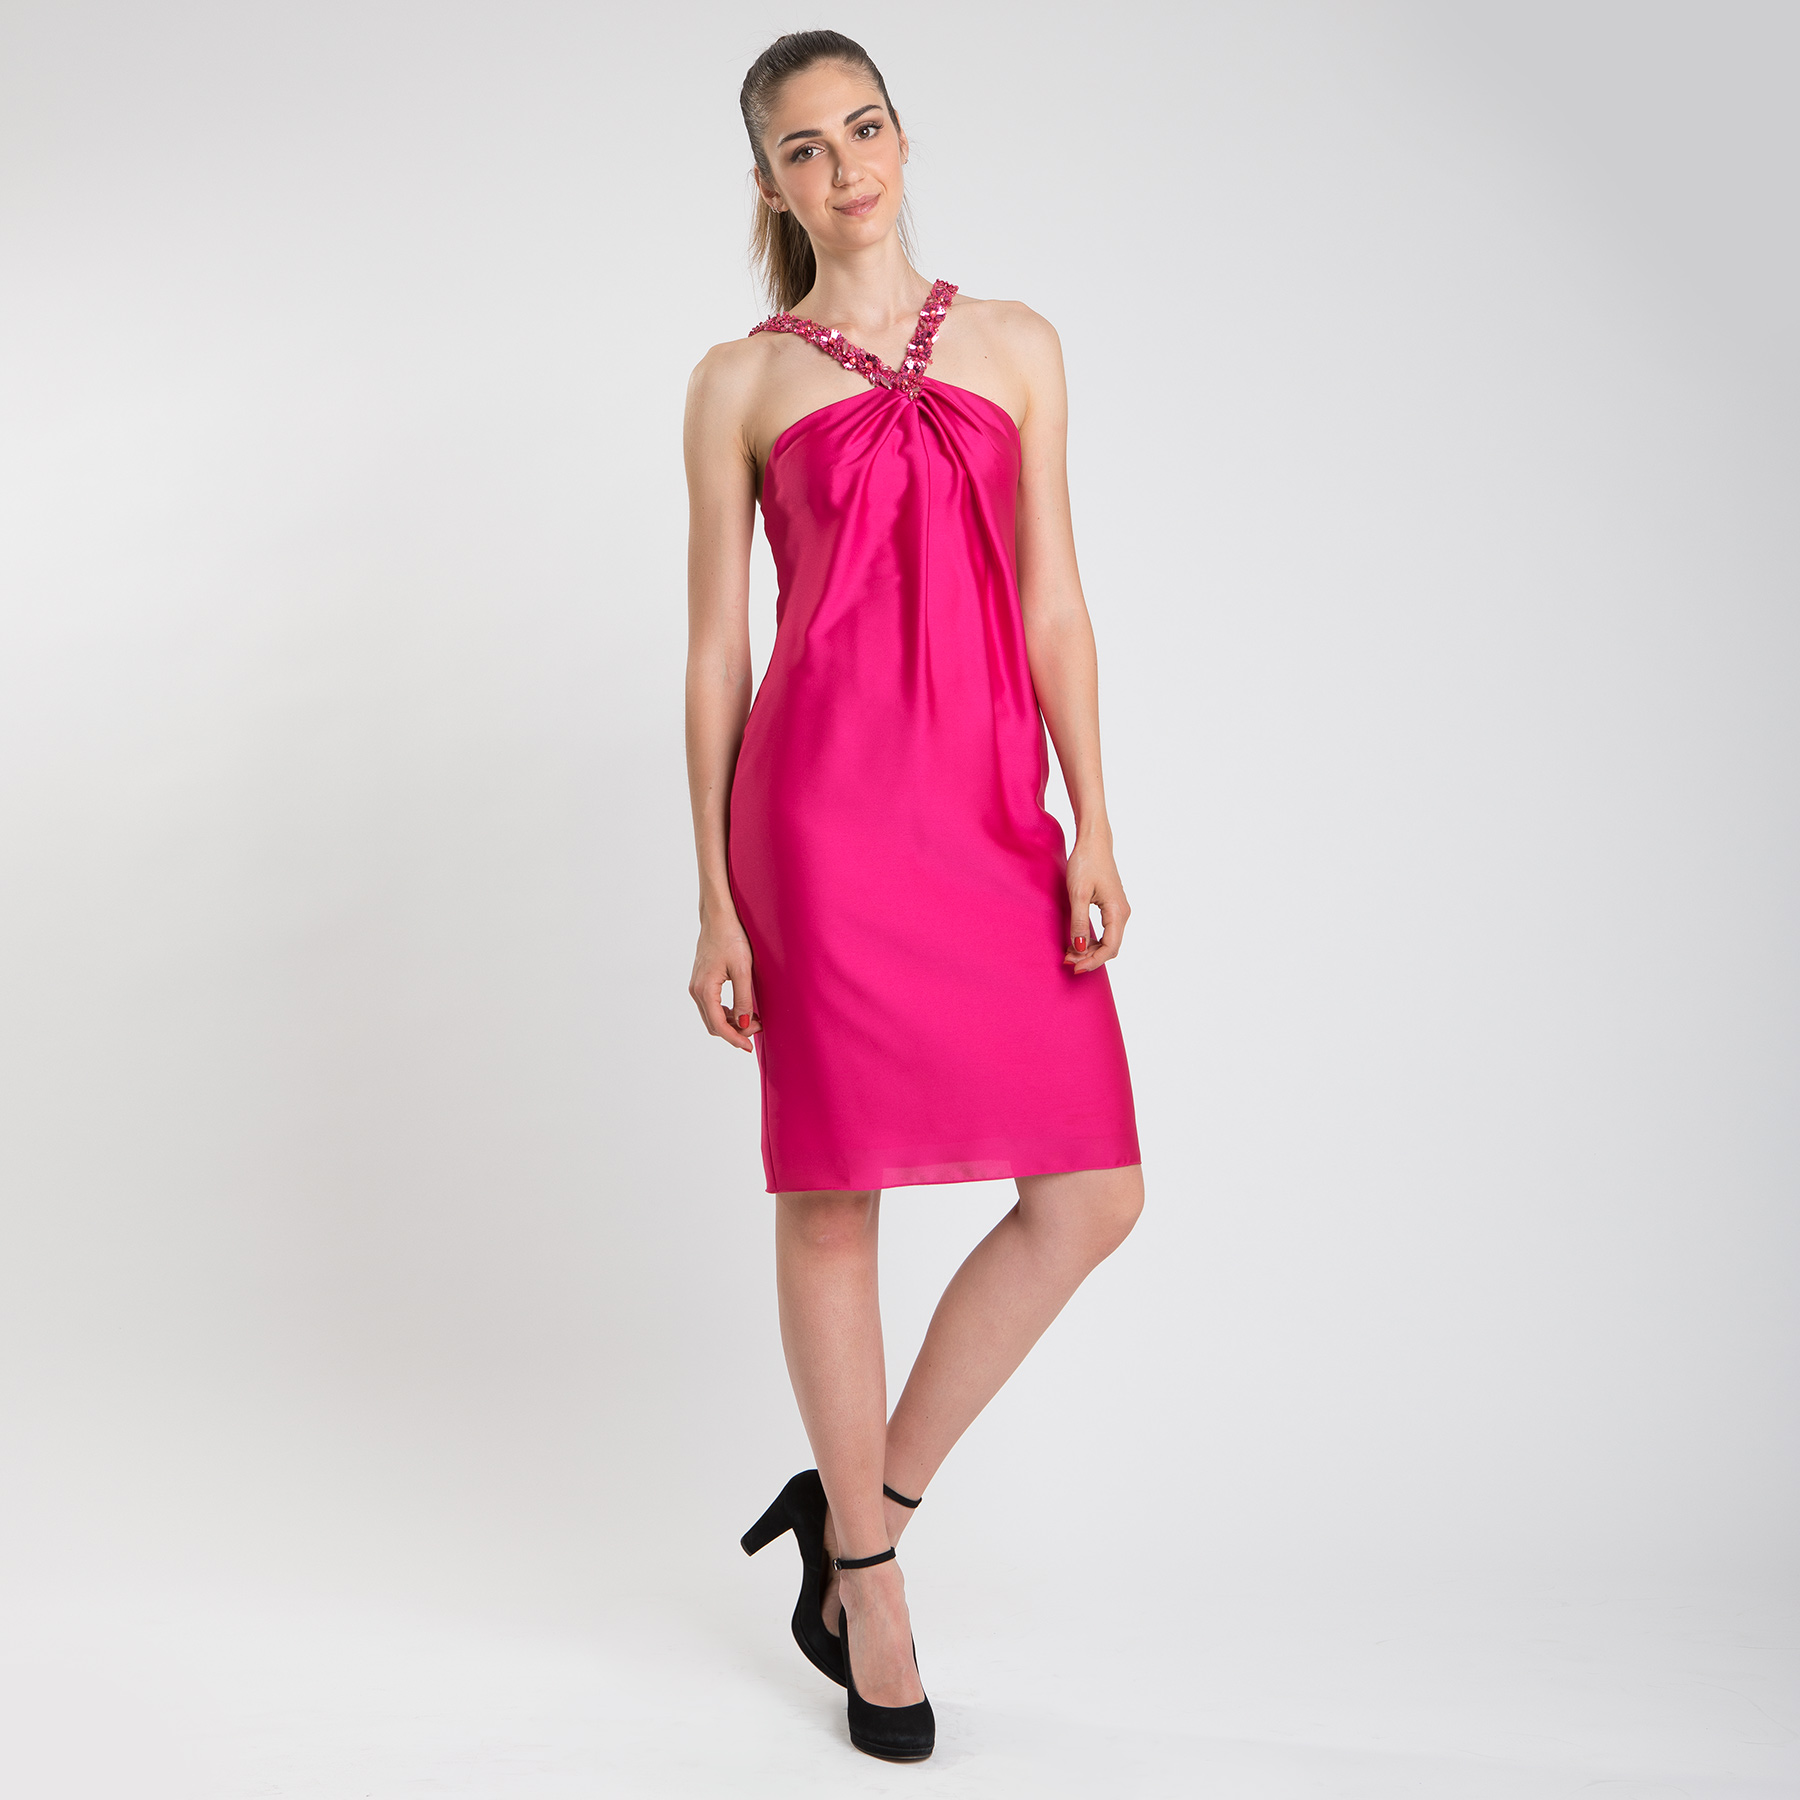 1ae5ccd54e8f Pastore Couture - 513A32 - WedStore.it